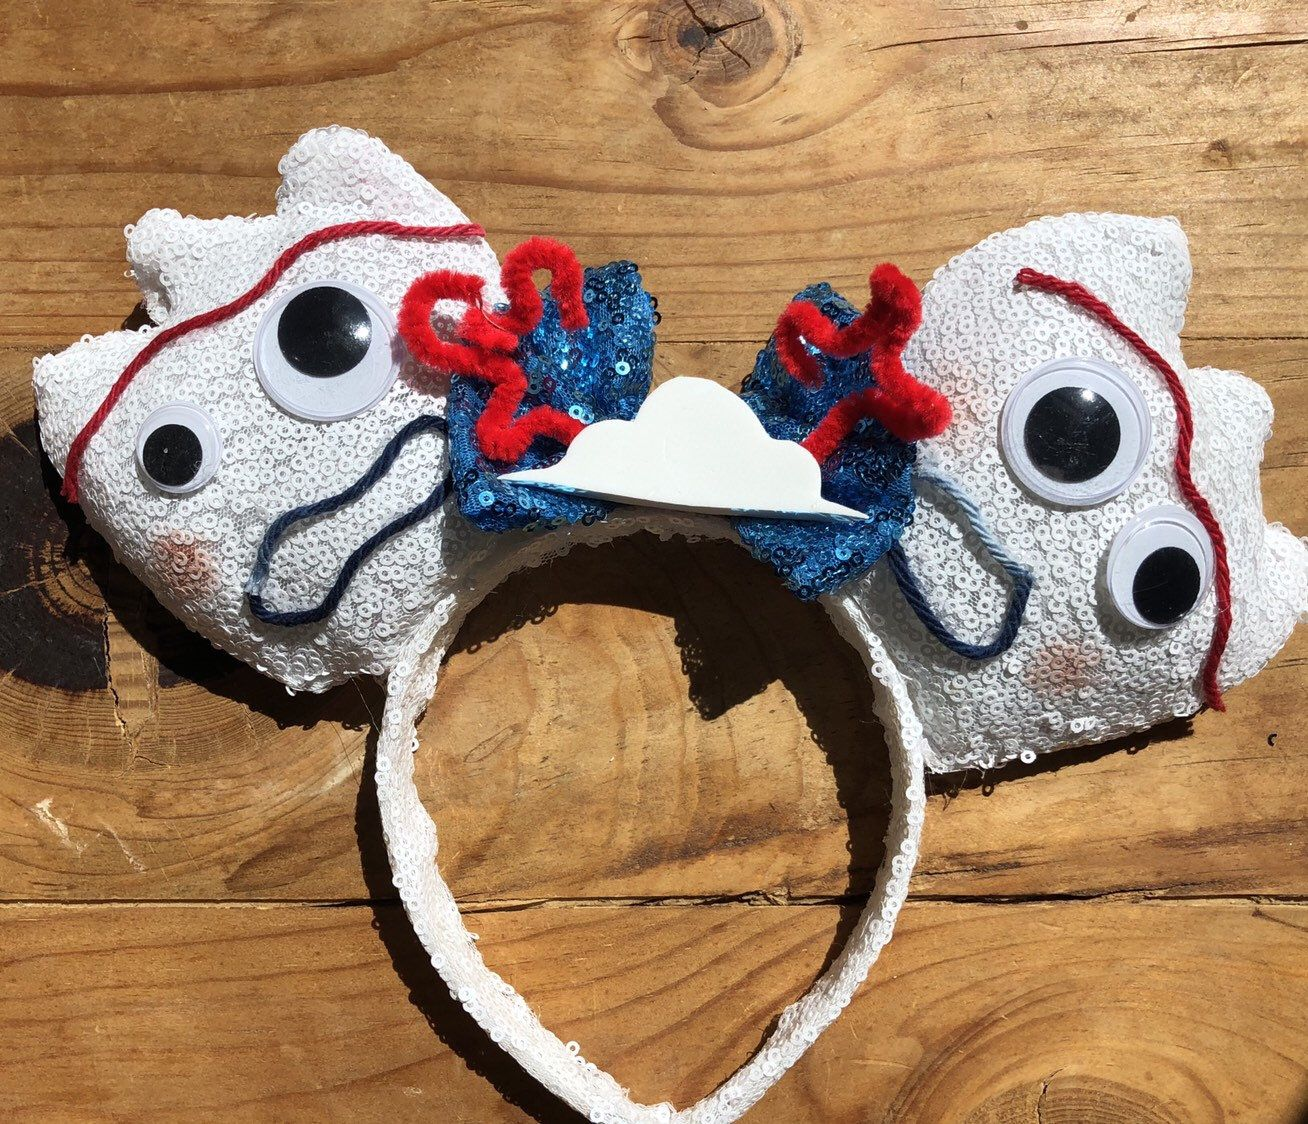 One Forky hair clip, toy story 4 hair clip, spork ears